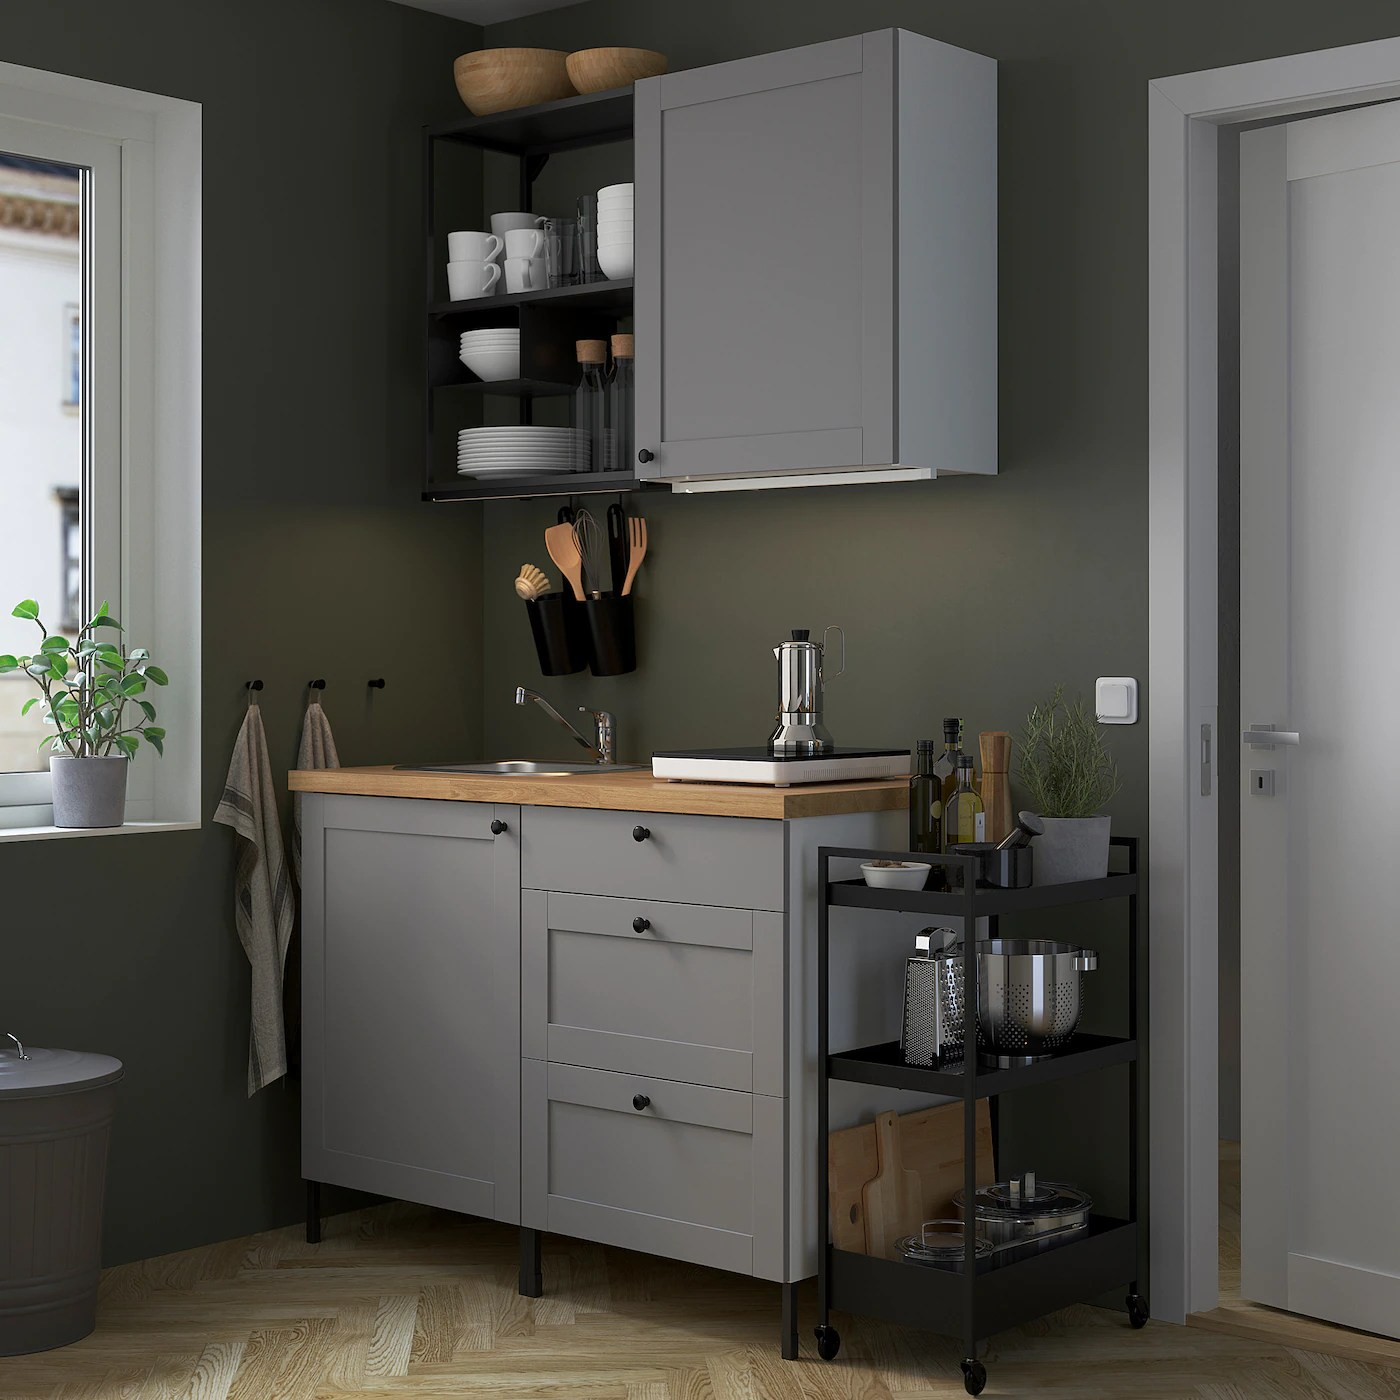 Ikea Küche Side By Side Kühlschrank Enhet Kitchen - Anthracite/grey Frame - Ikea